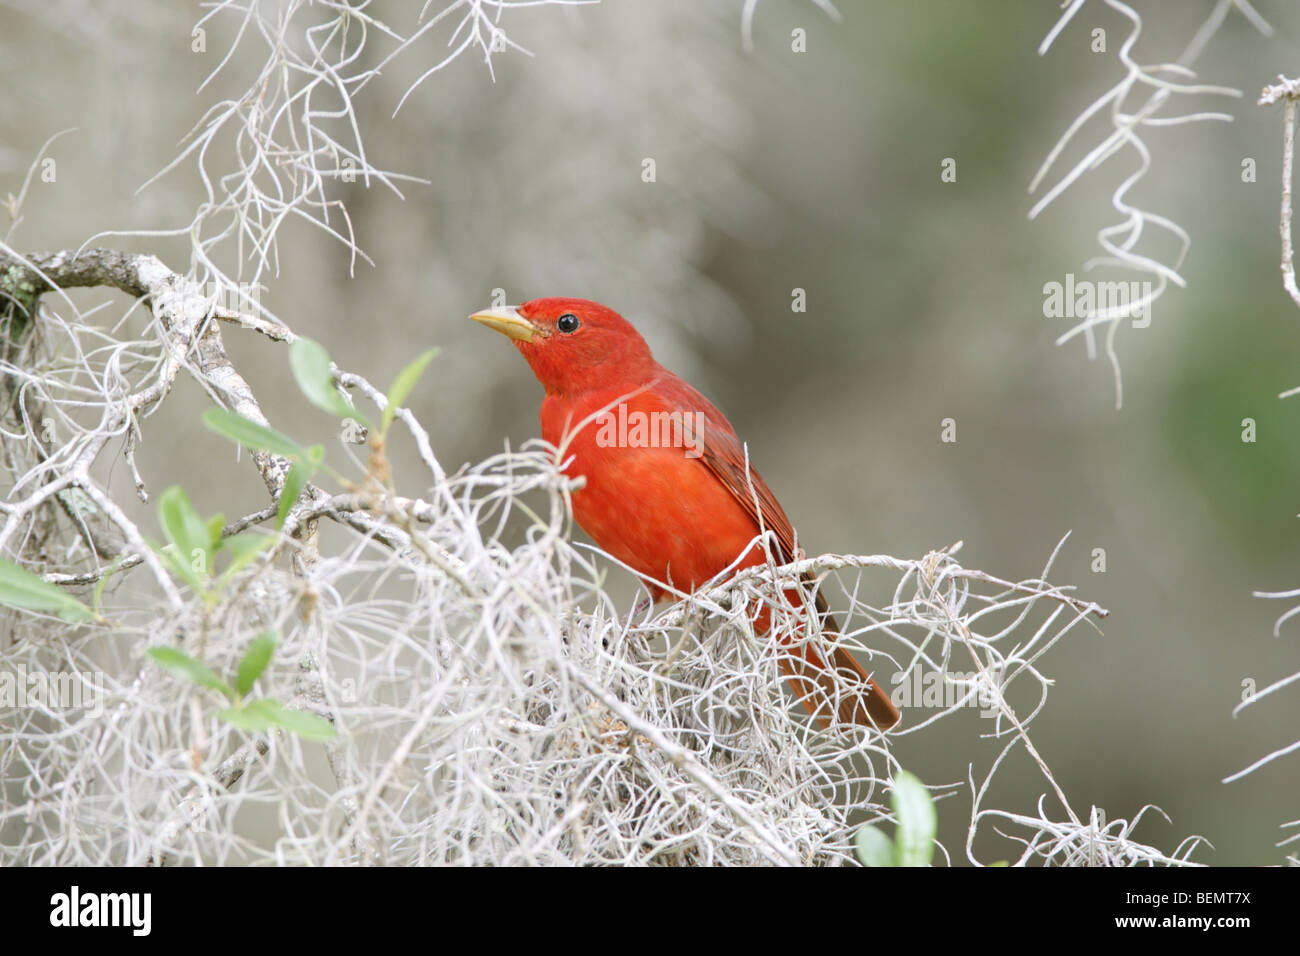 Summer Tanager perched in Spanish Moss - Stock Image